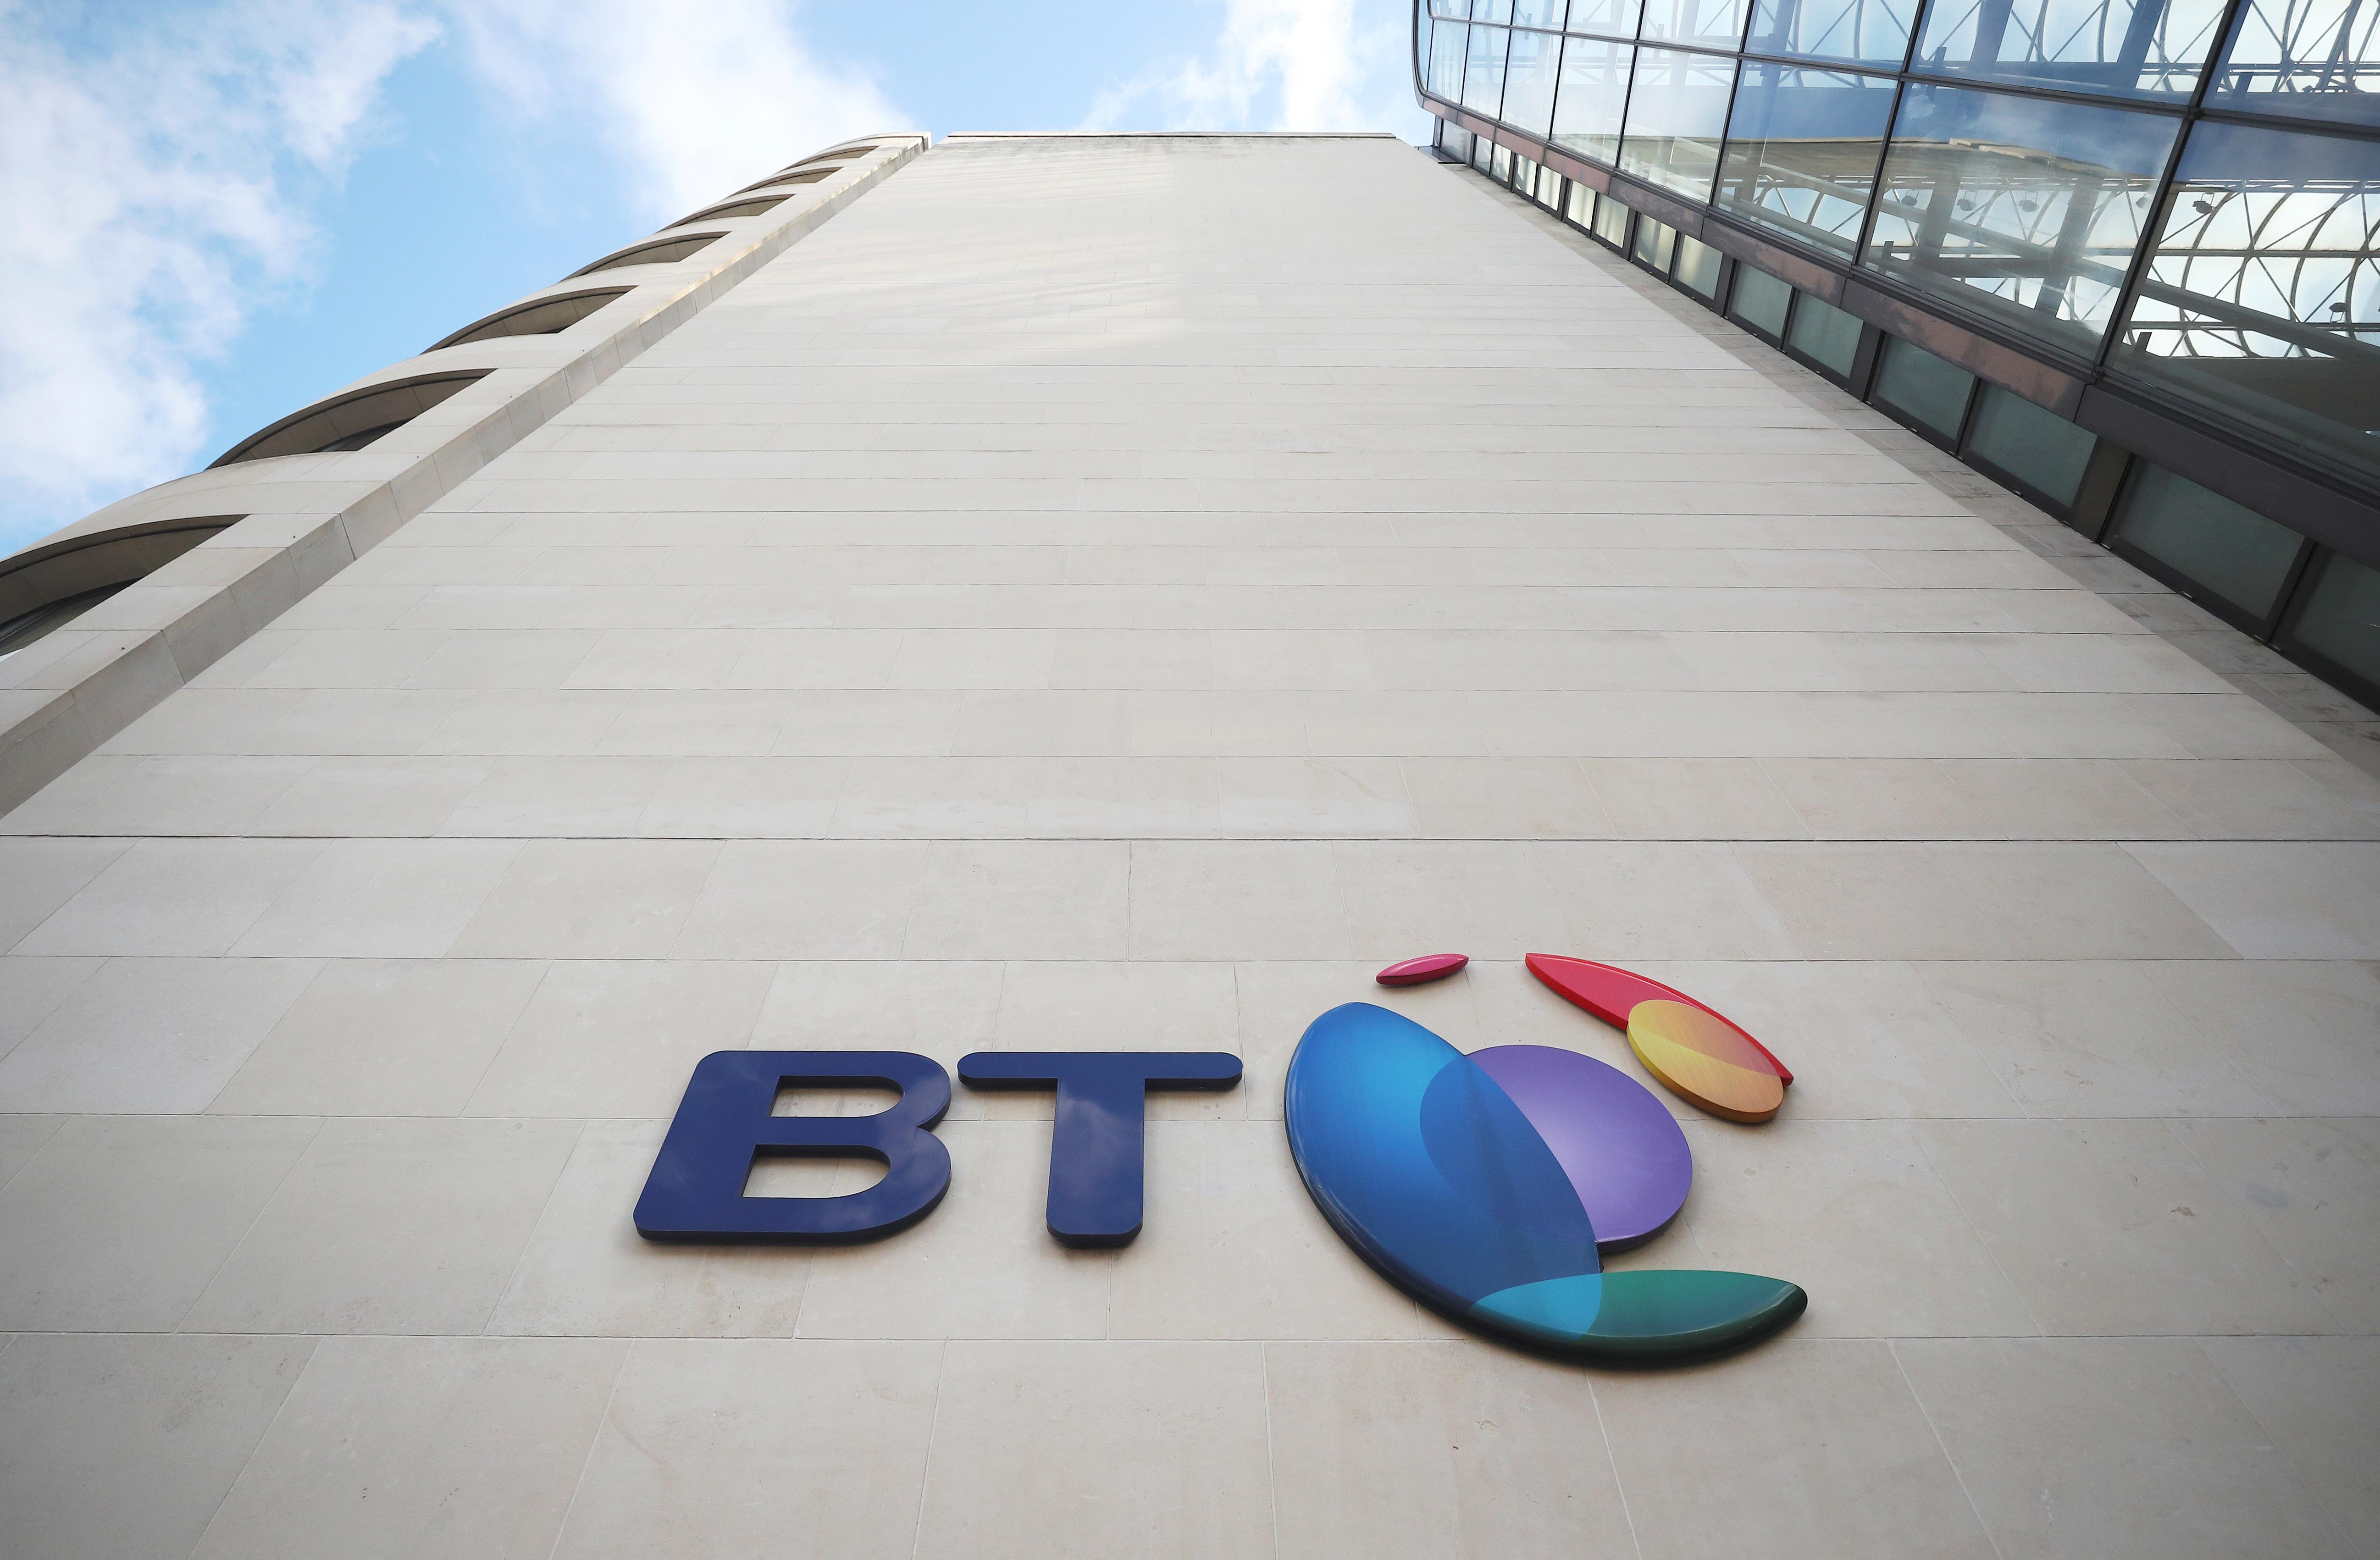 BT to sell London headquarters for £209.6 million